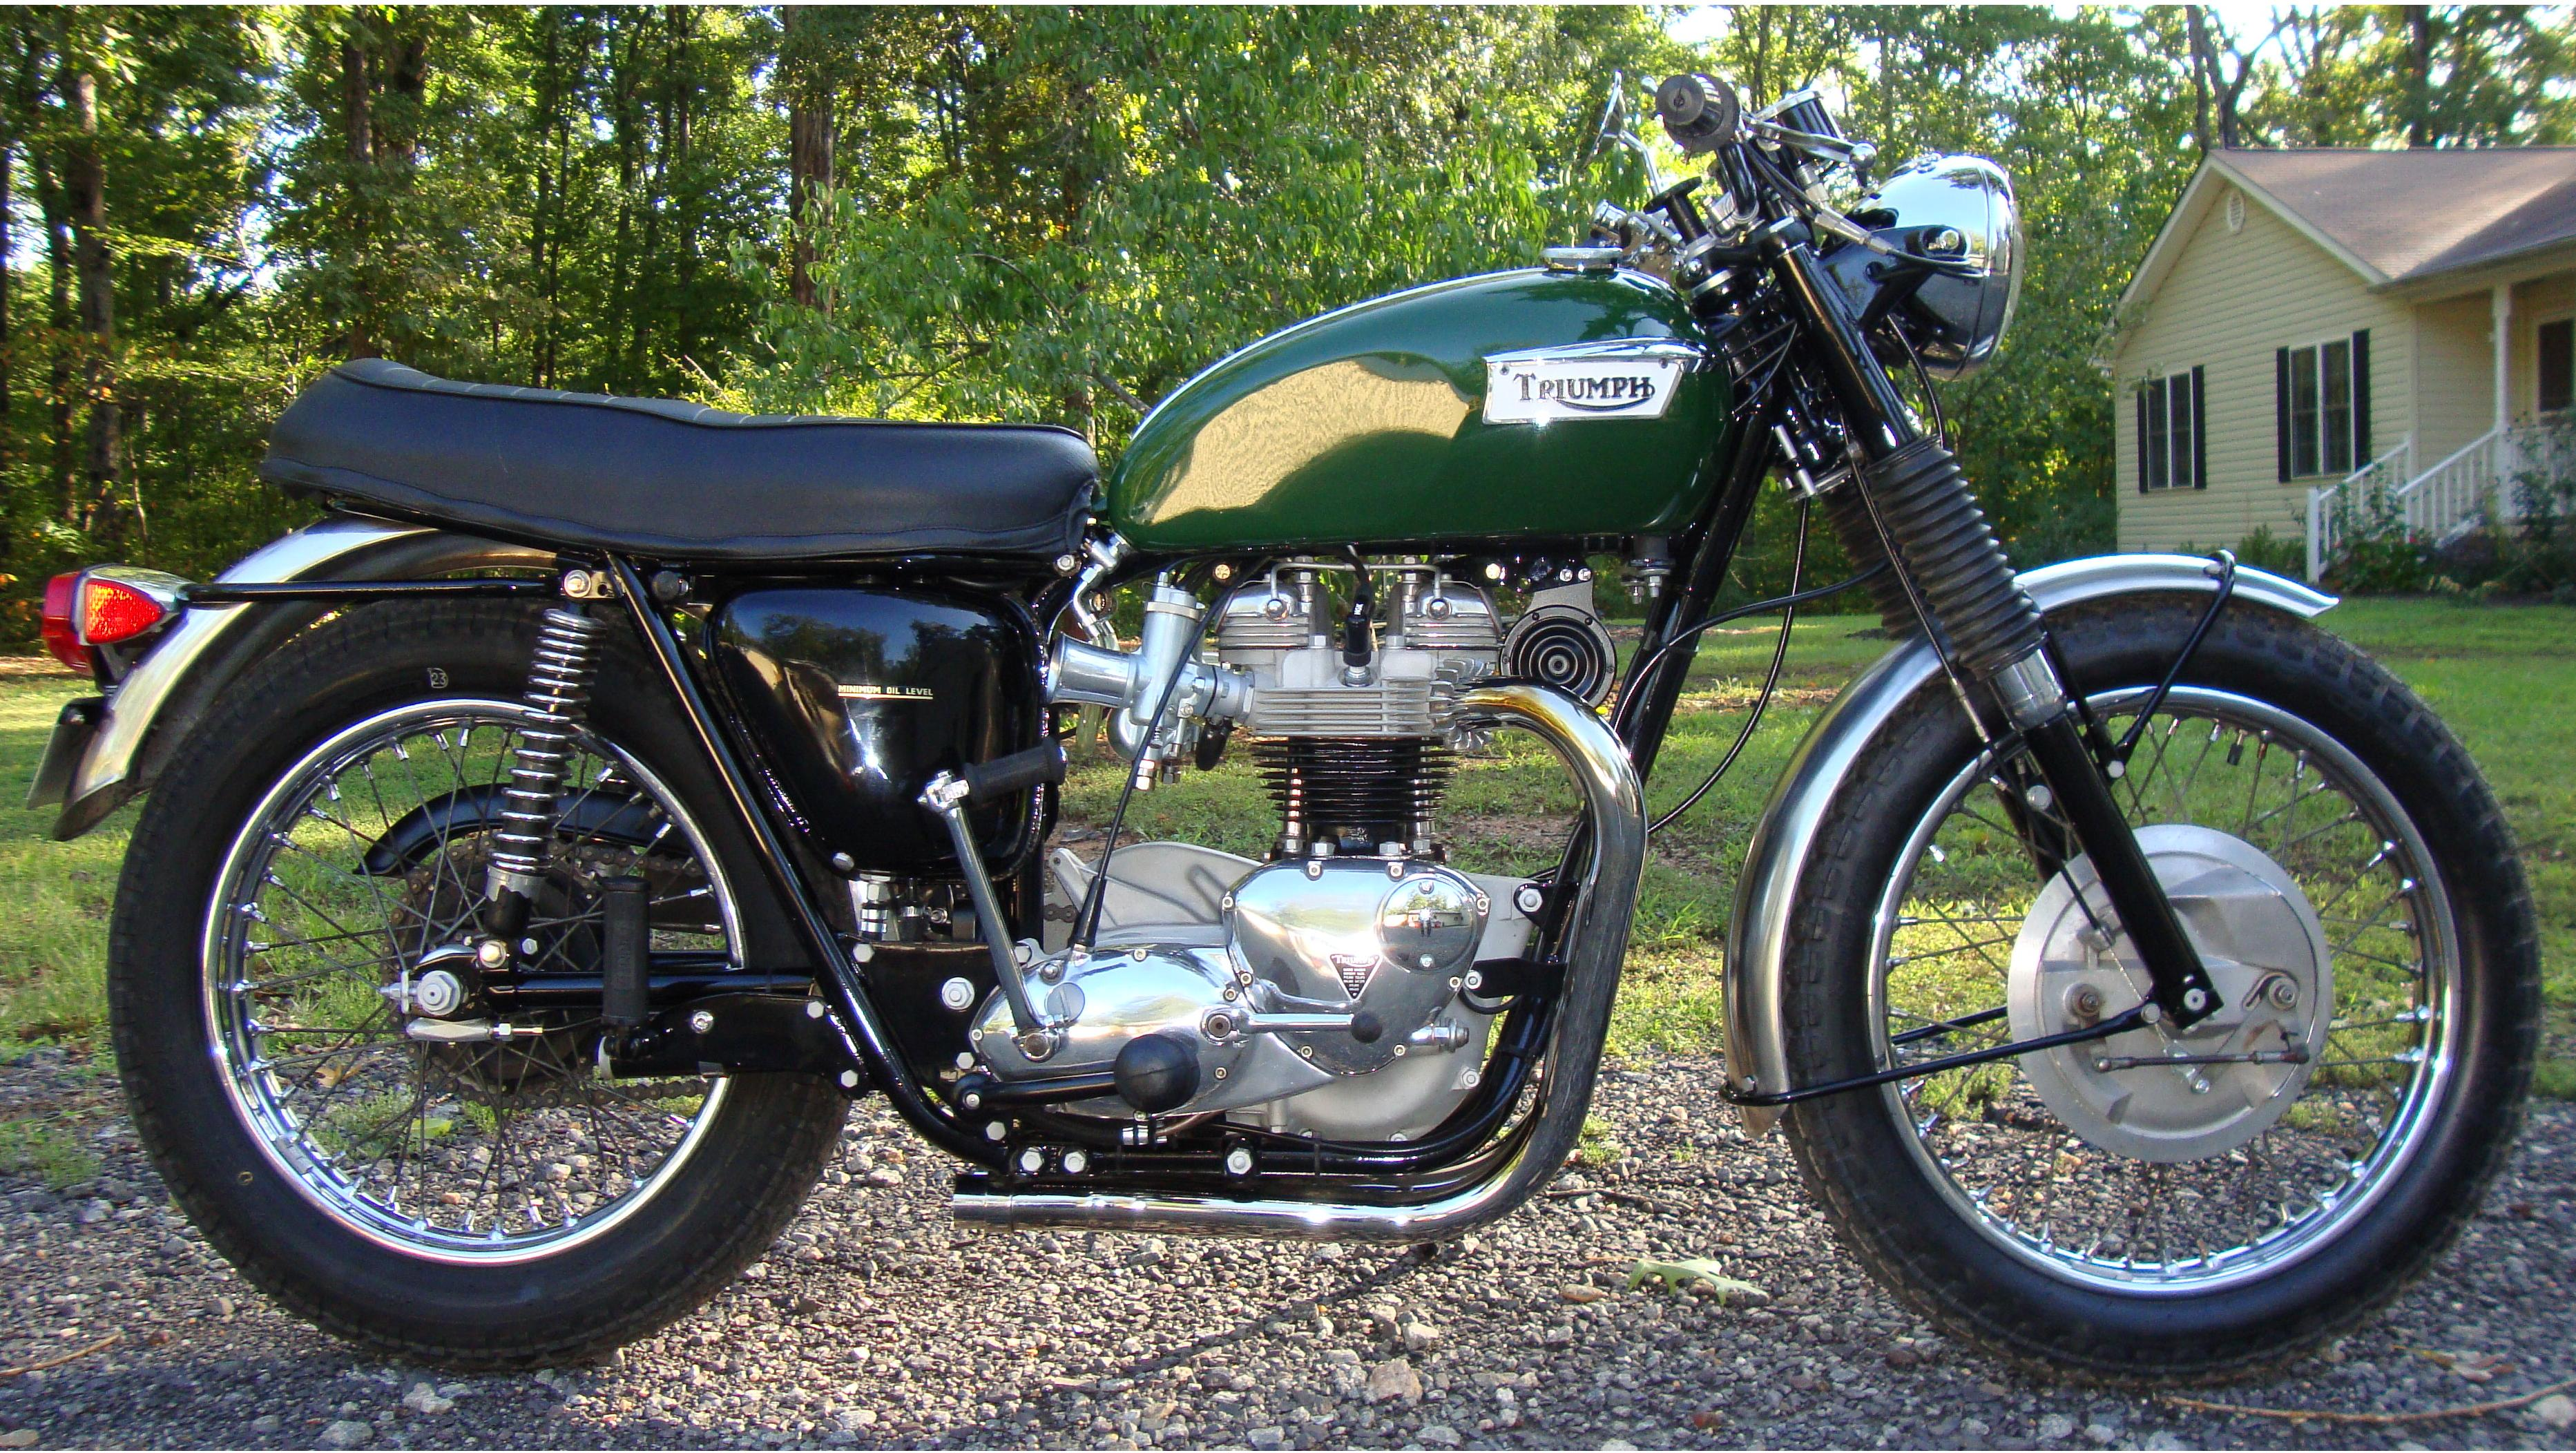 Wiring Diagram 72 Triumph And Schematics Gt6 Dual Coil Points Source Diagrams 1967 Bonneville T120r Rcycle Com